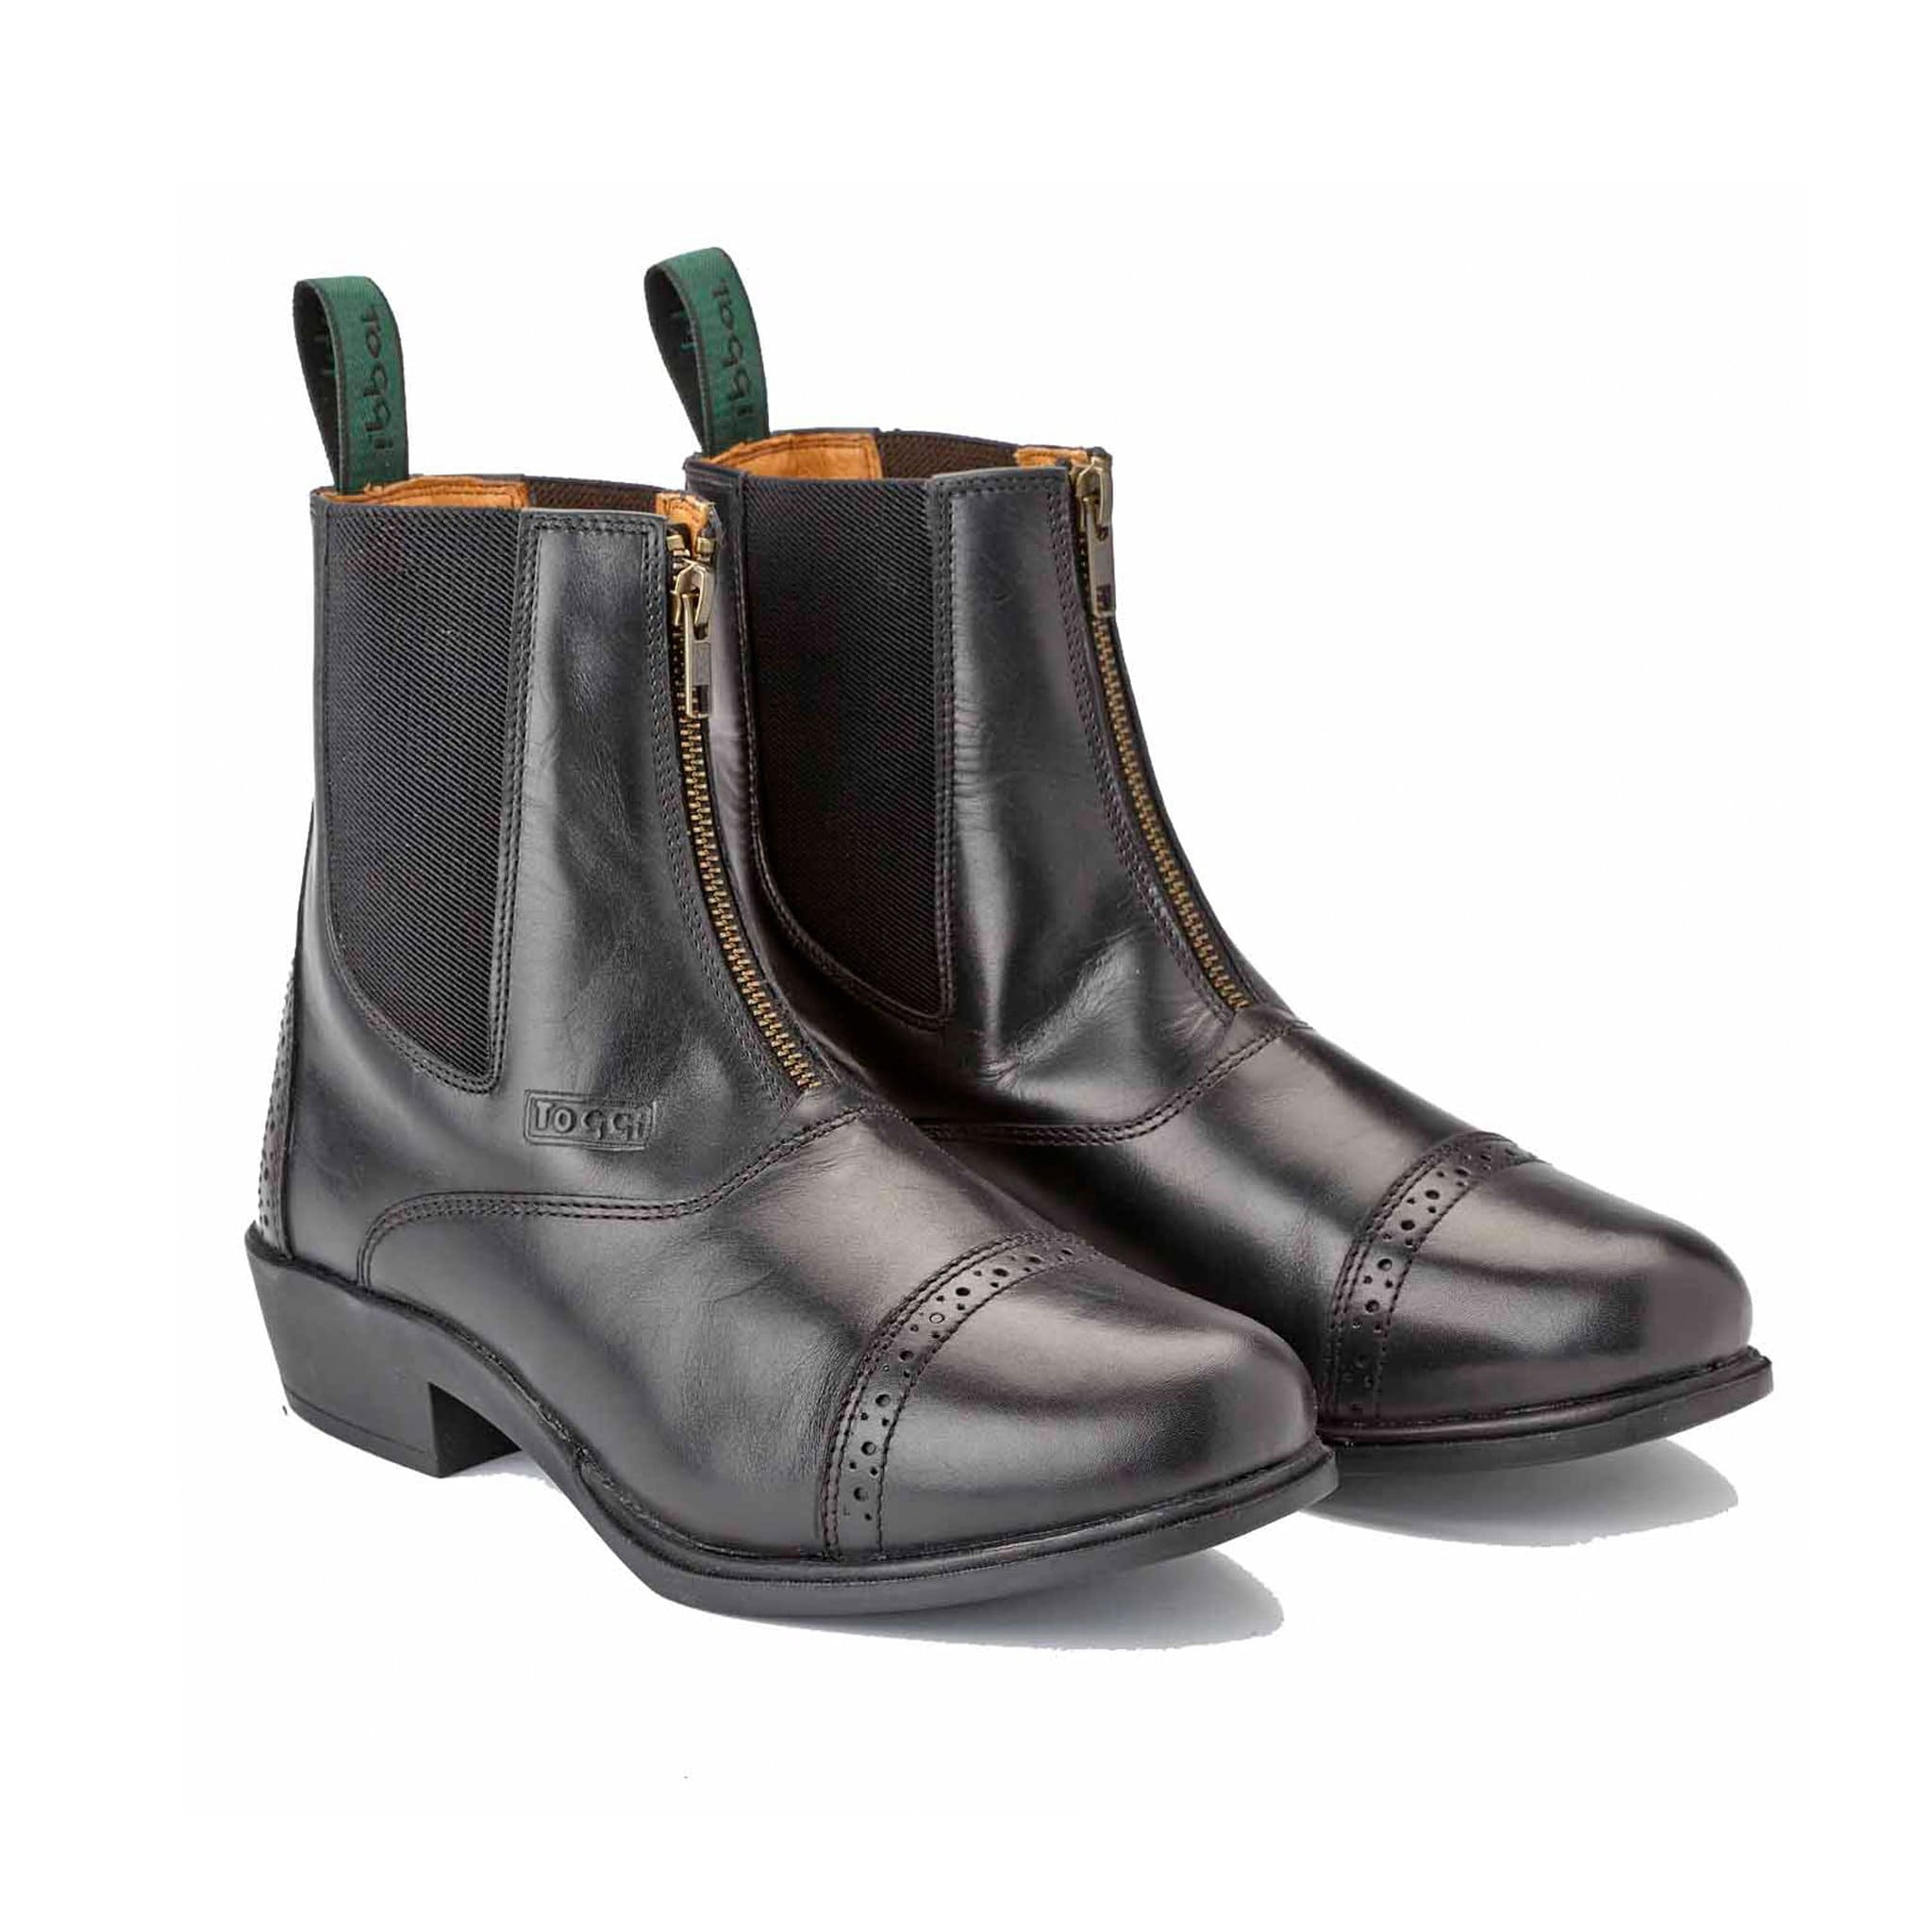 Toggi Richmond Leather Jodhpur Boot Black Studio